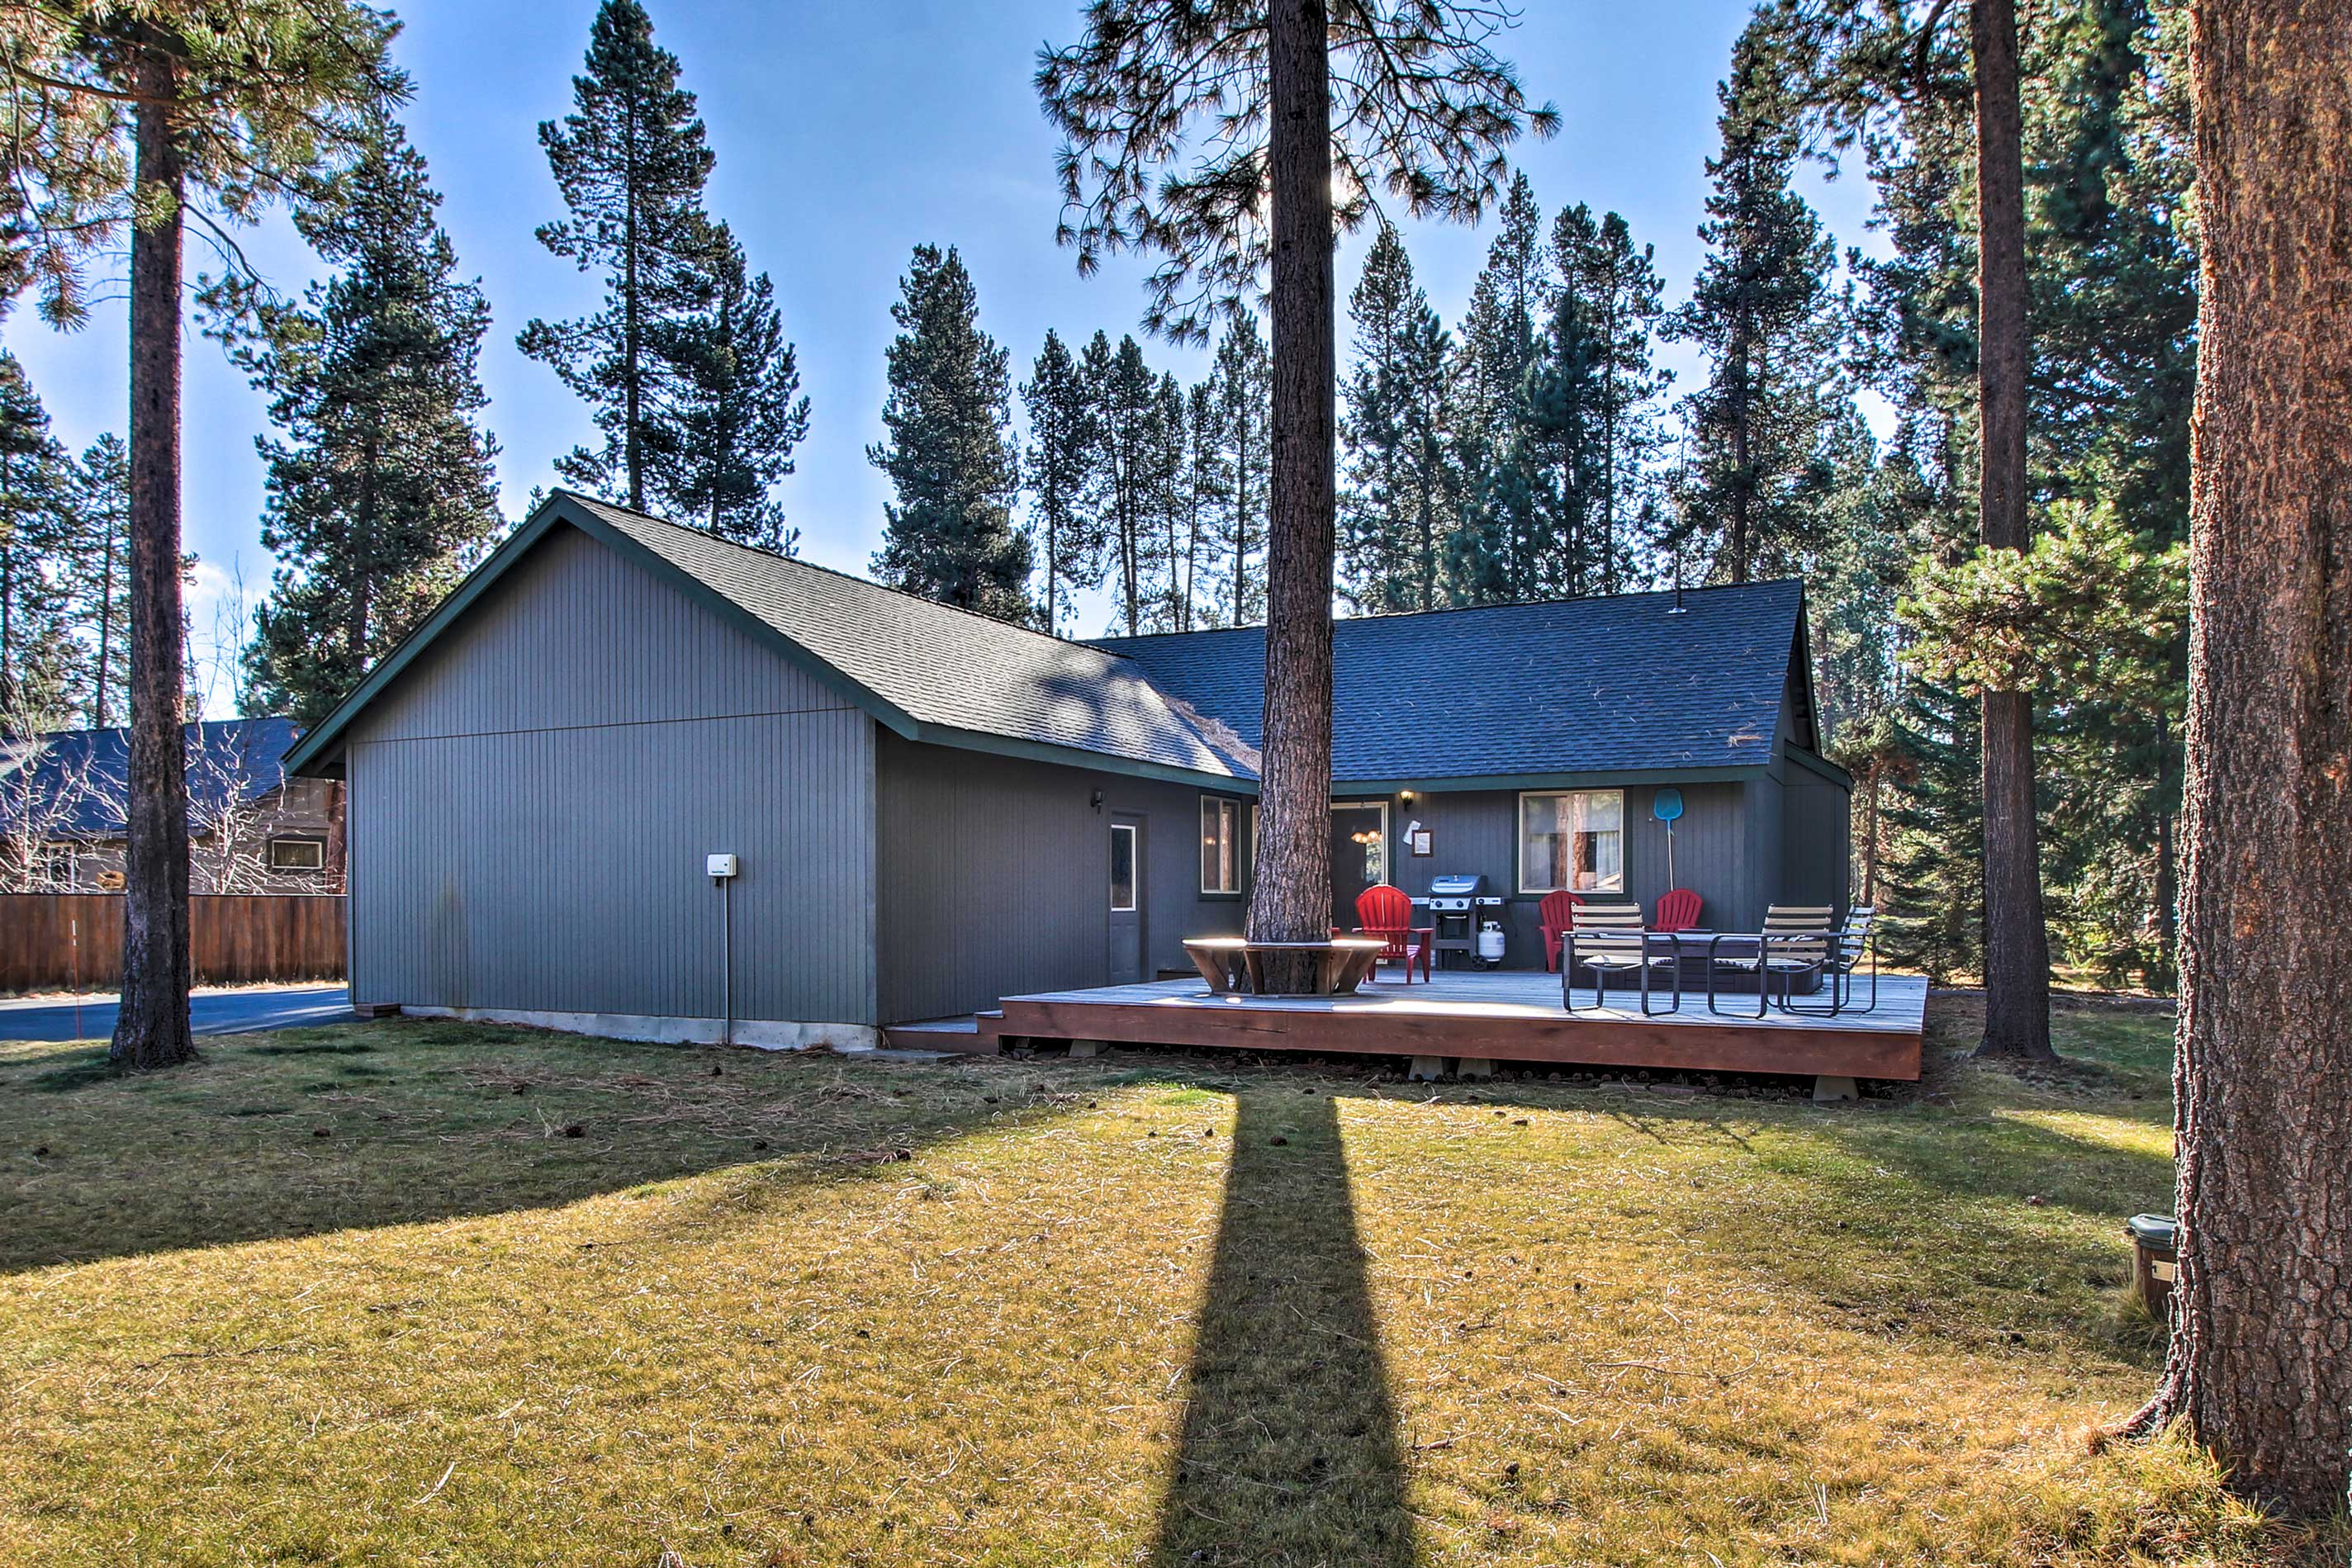 Explore all that Bend has to offer from the comforts of this vacation rental.